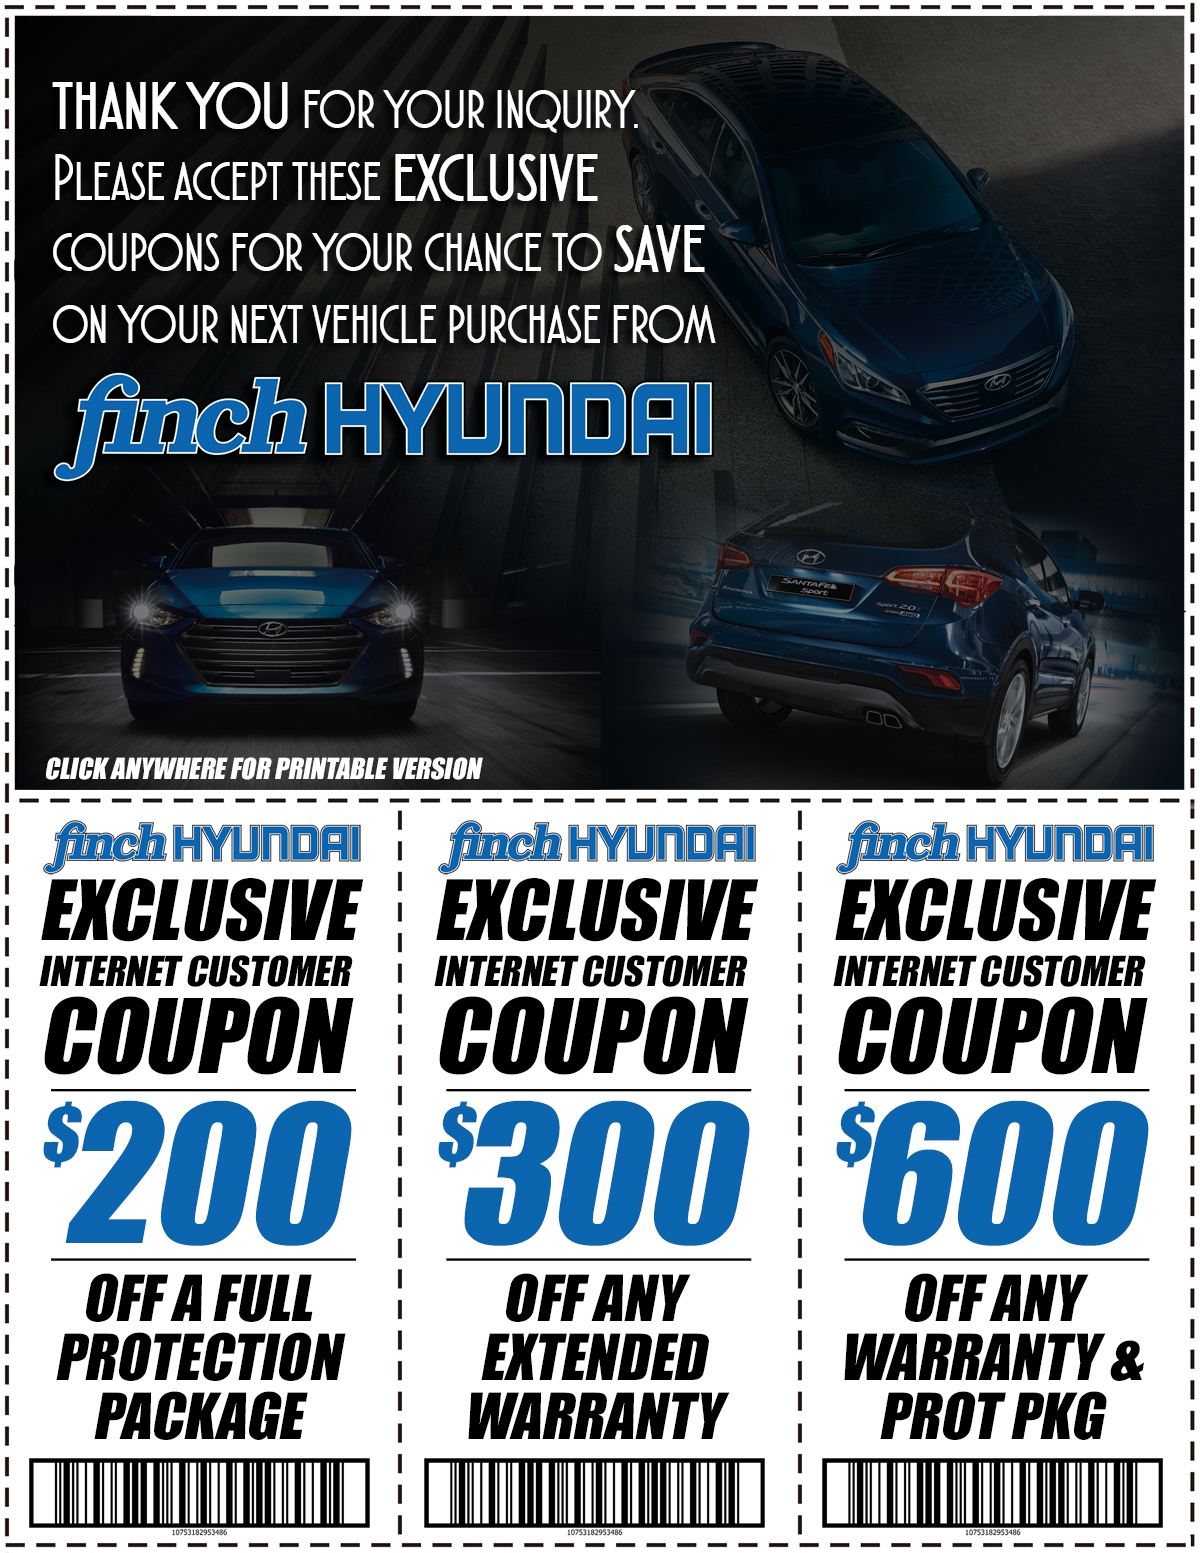 As a thank you for contacting Finch Hyundai, we would like to offer you these exclusive Coupons to save up to $600 off any warranty & protection program!